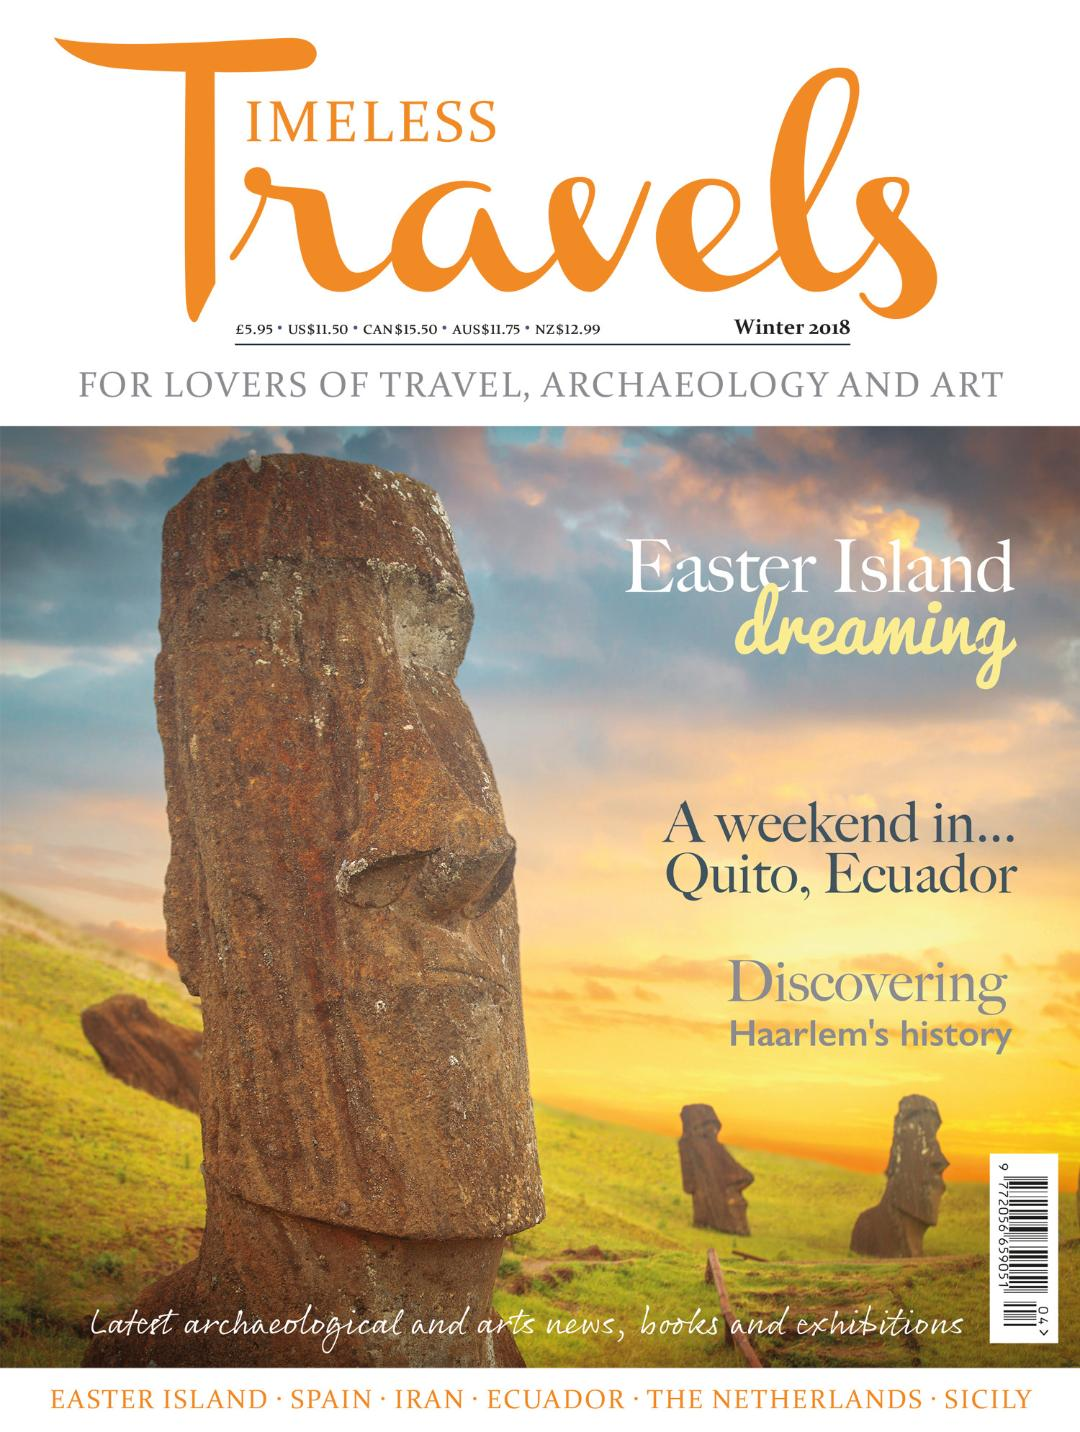 Winter Edition of Timeless Travels